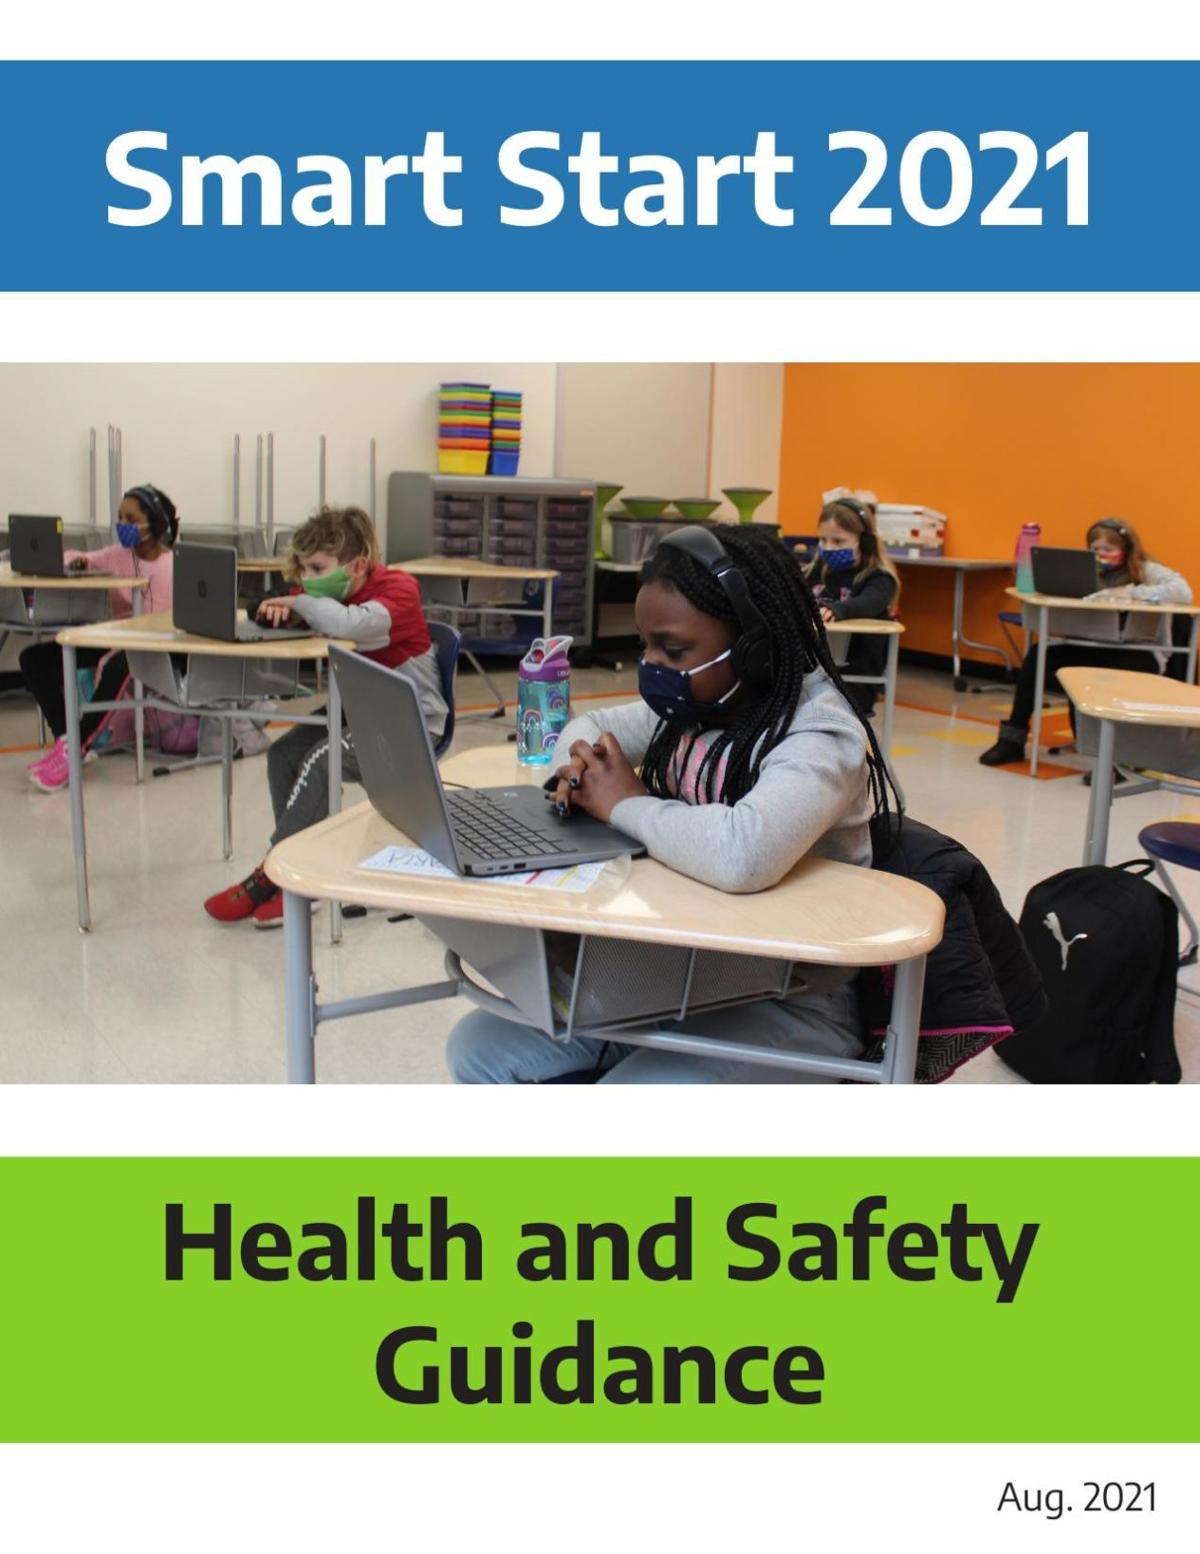 CLICK HERE to review the RUSD Smart Start 2021 plan